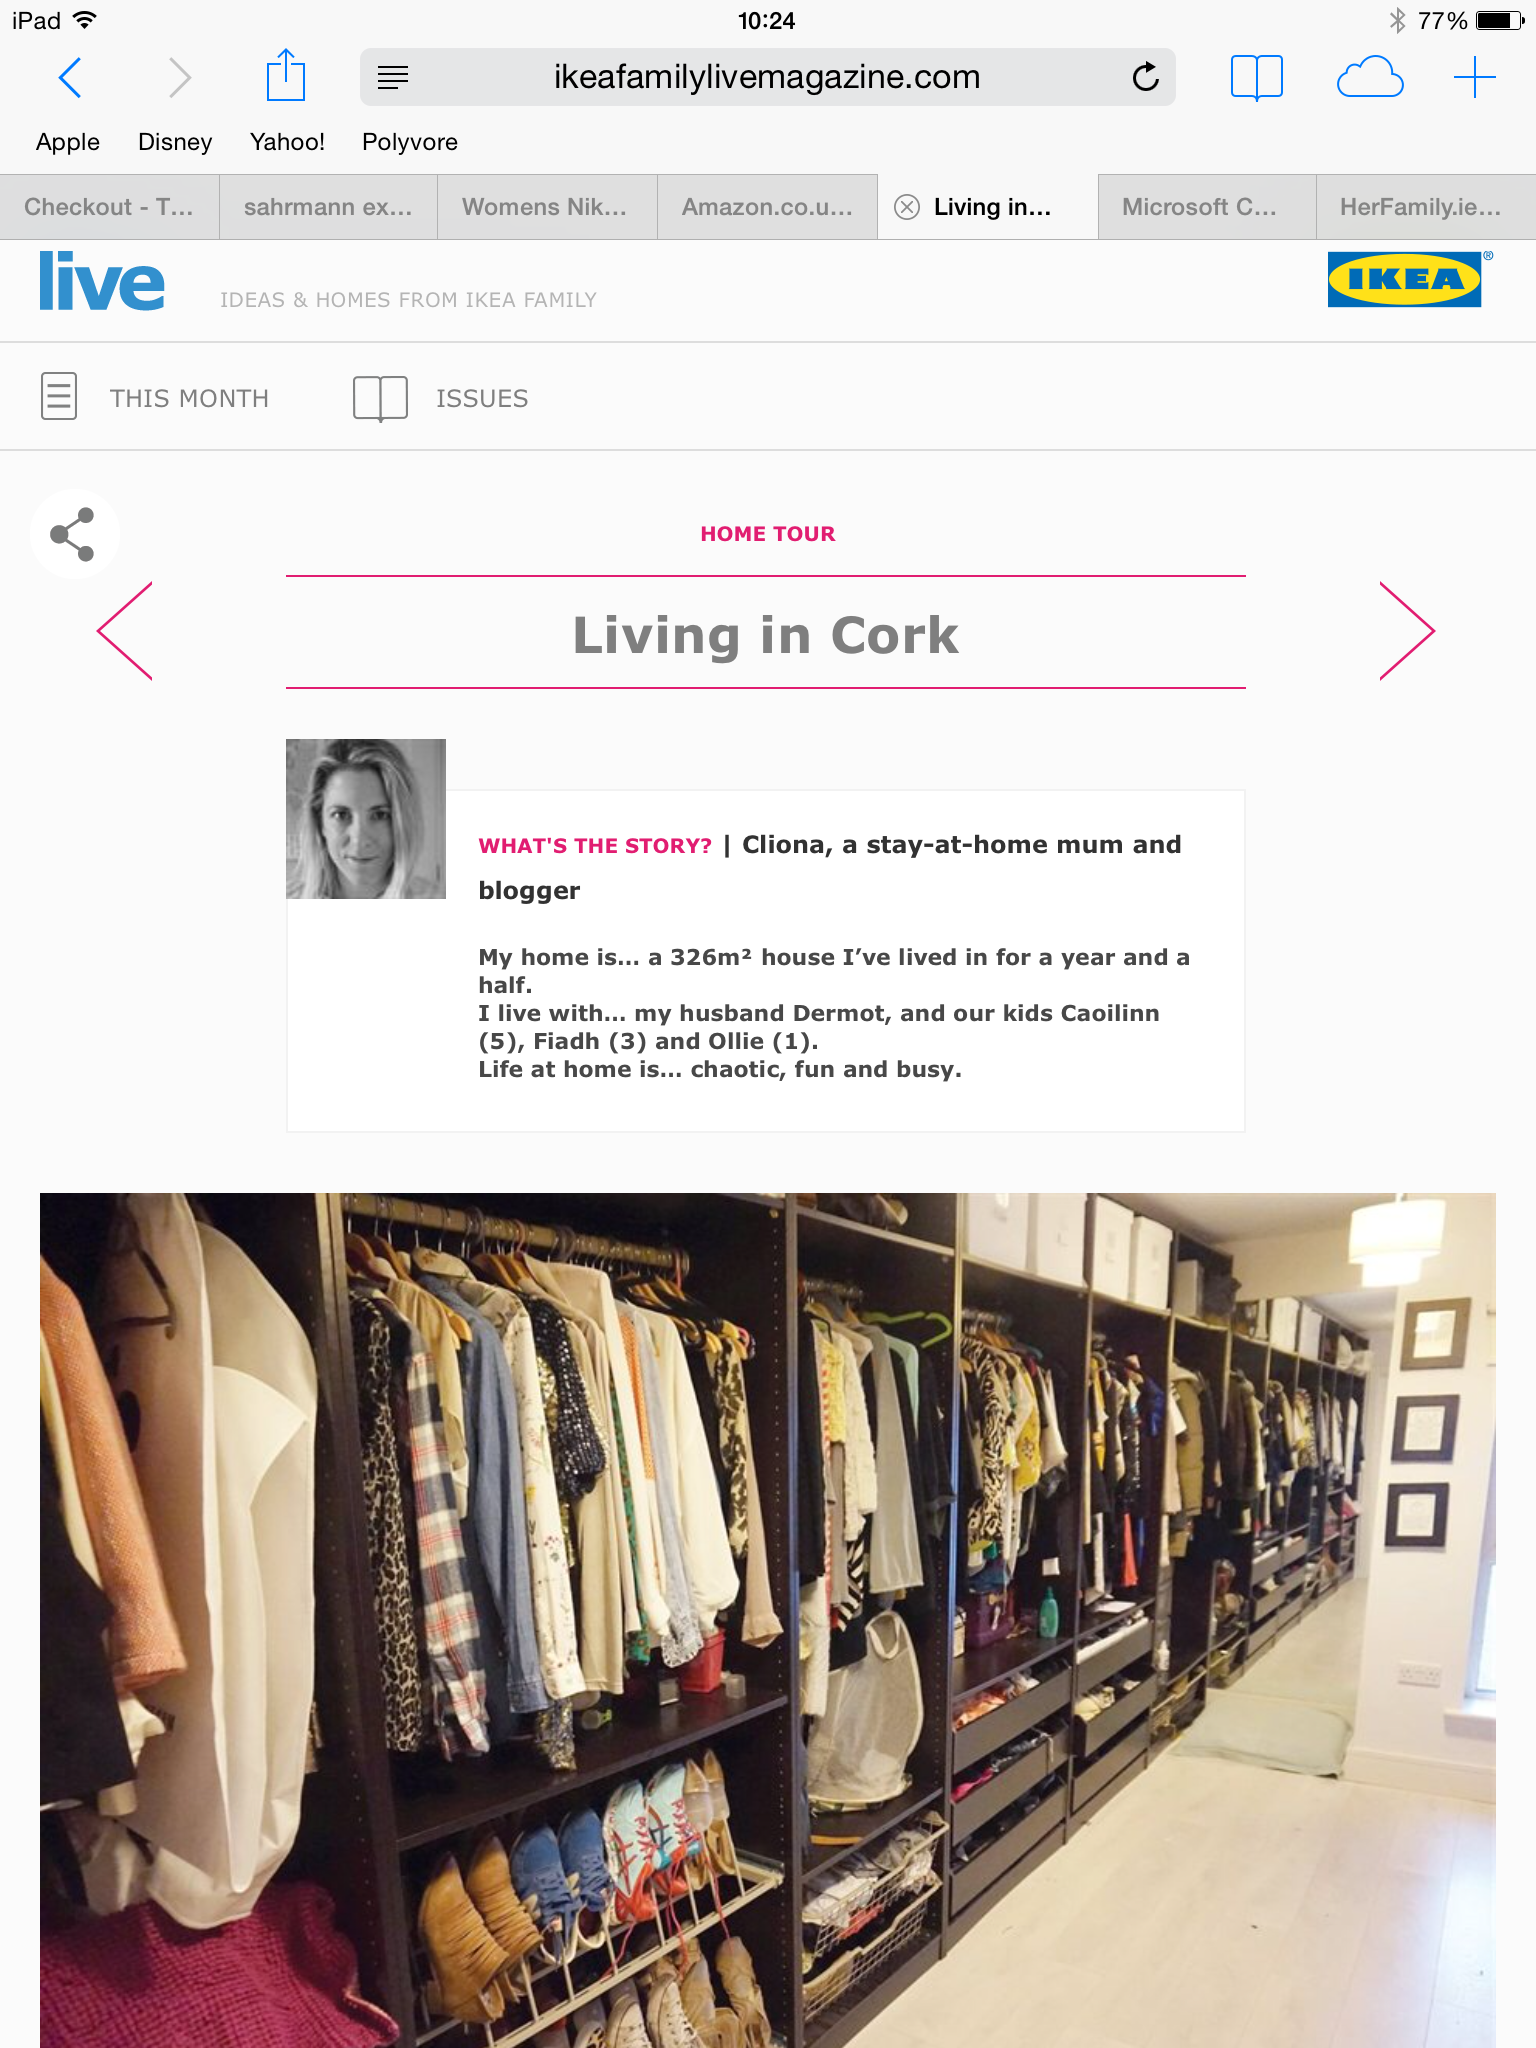 Ikea Live Magazine Feature – quick tidy up!